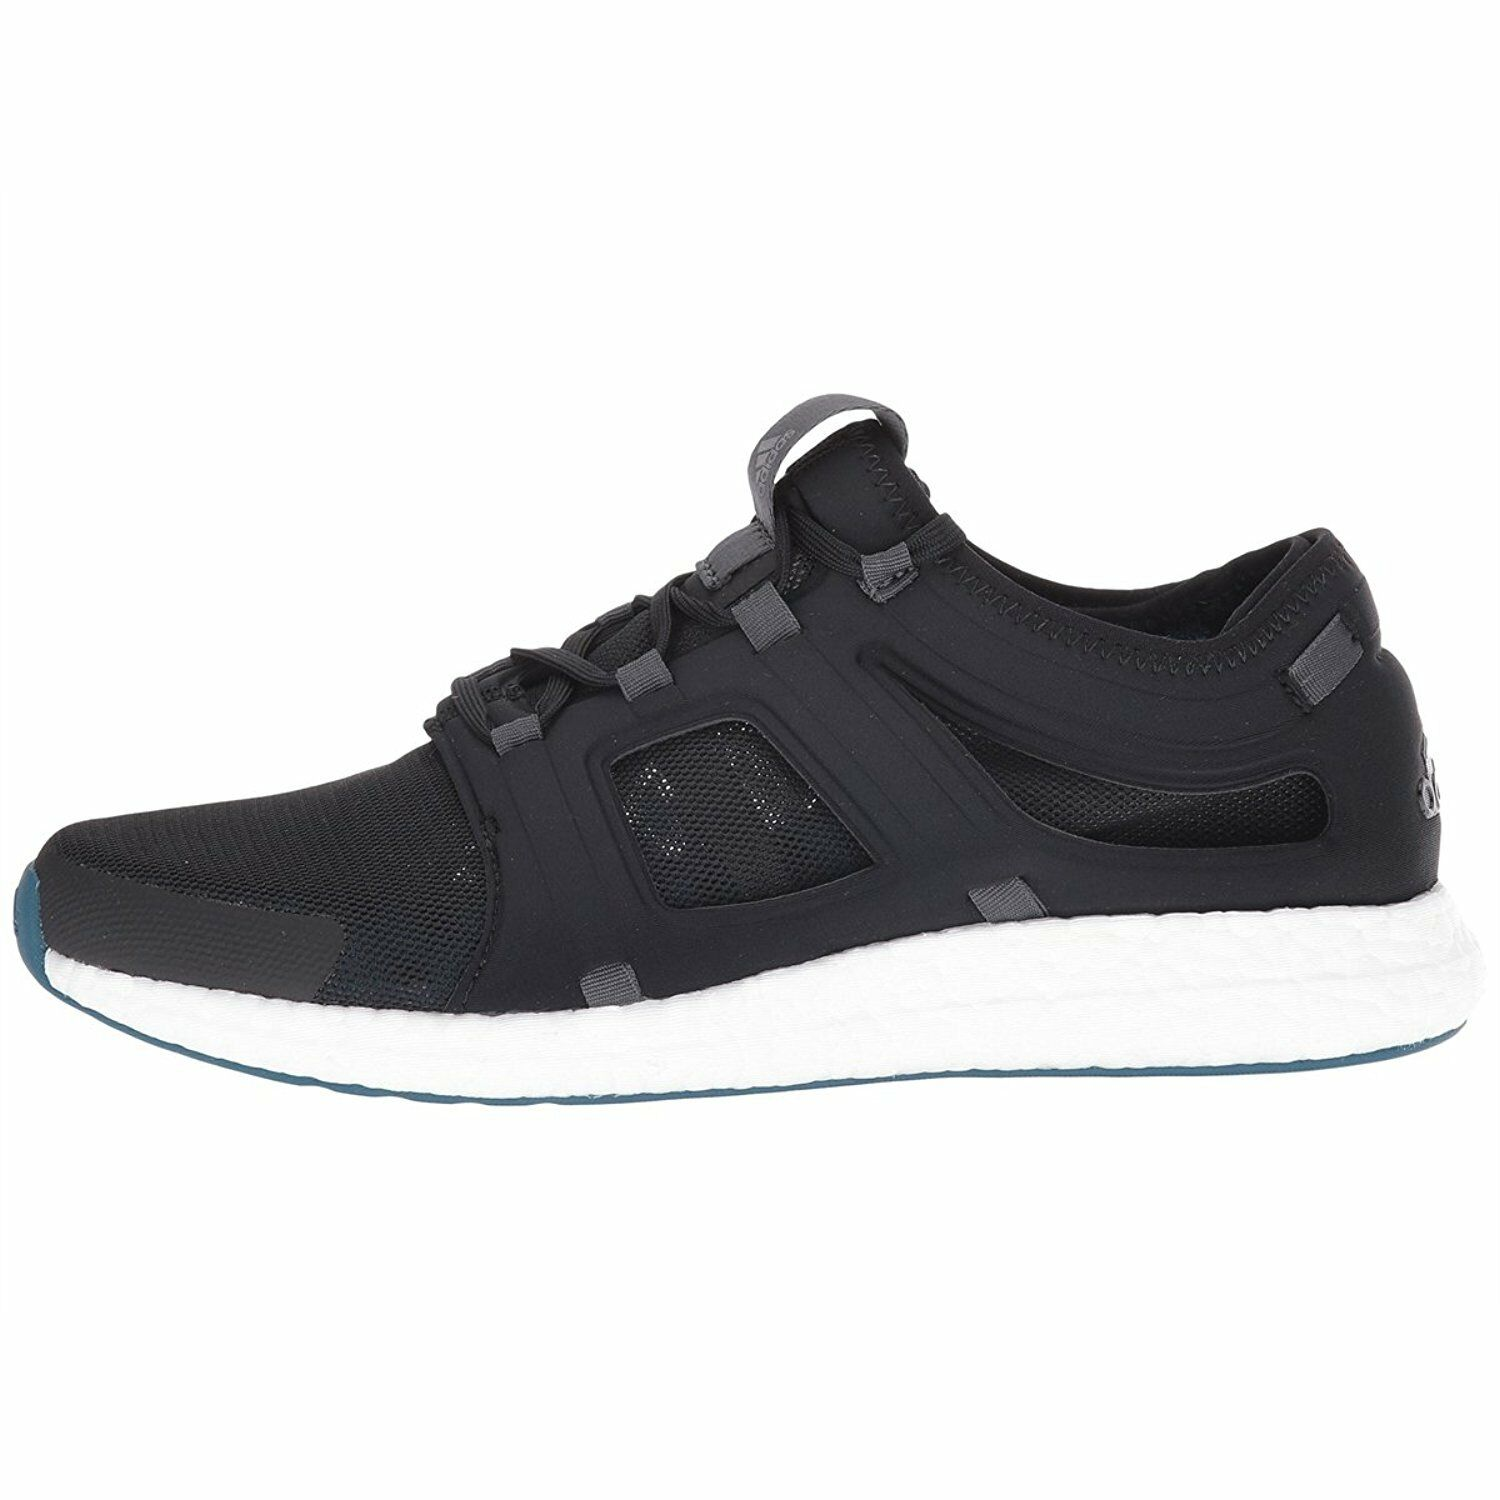 ADIDAS MENS PERFORMANCE ROCKET CC ROCKET PERFORMANCE M  RUNNING SHOES #S74465 65d0f6